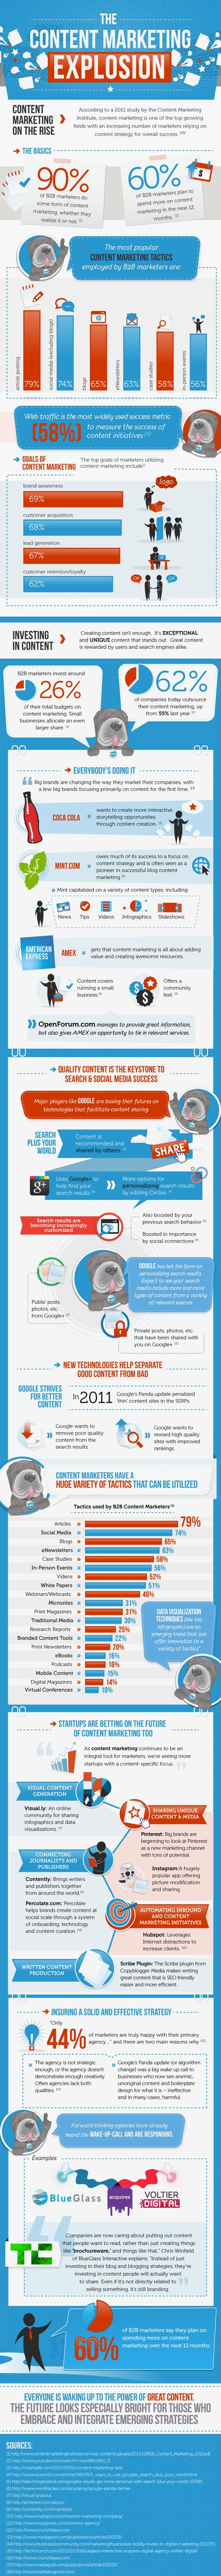 The Content Marketing Explosion #content #marketing #infographic